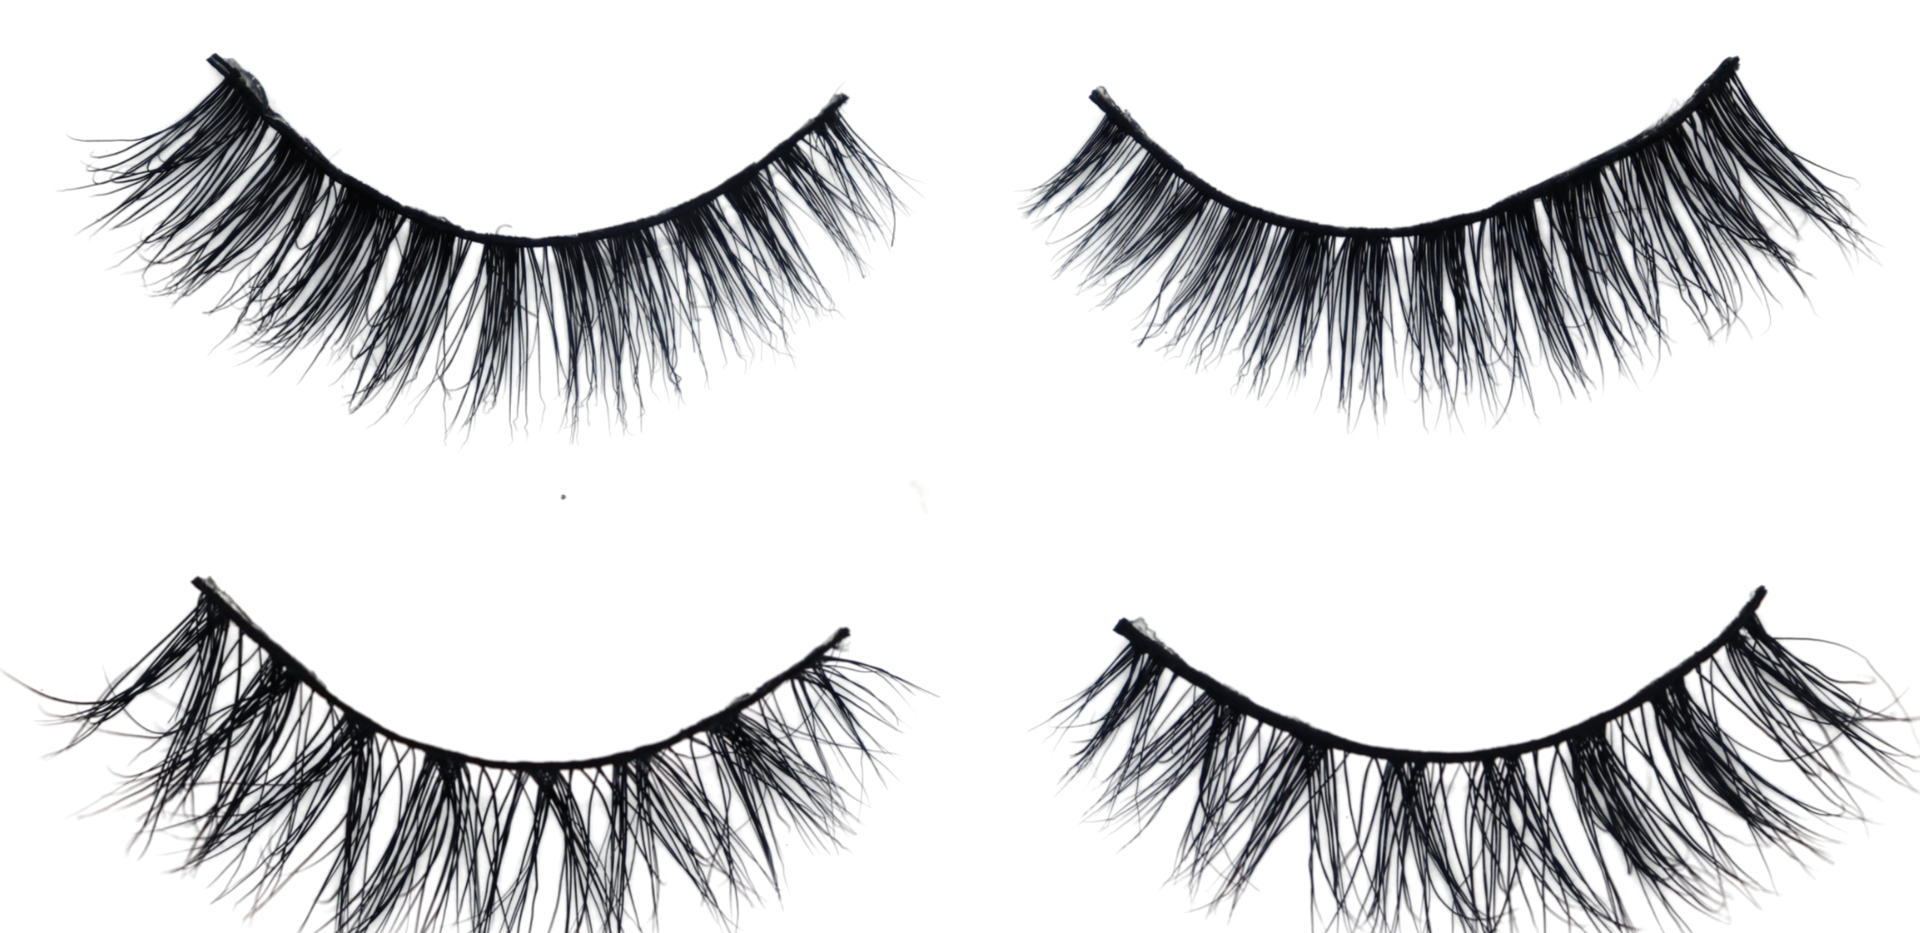 Thin Lash (Both) Without BG.png